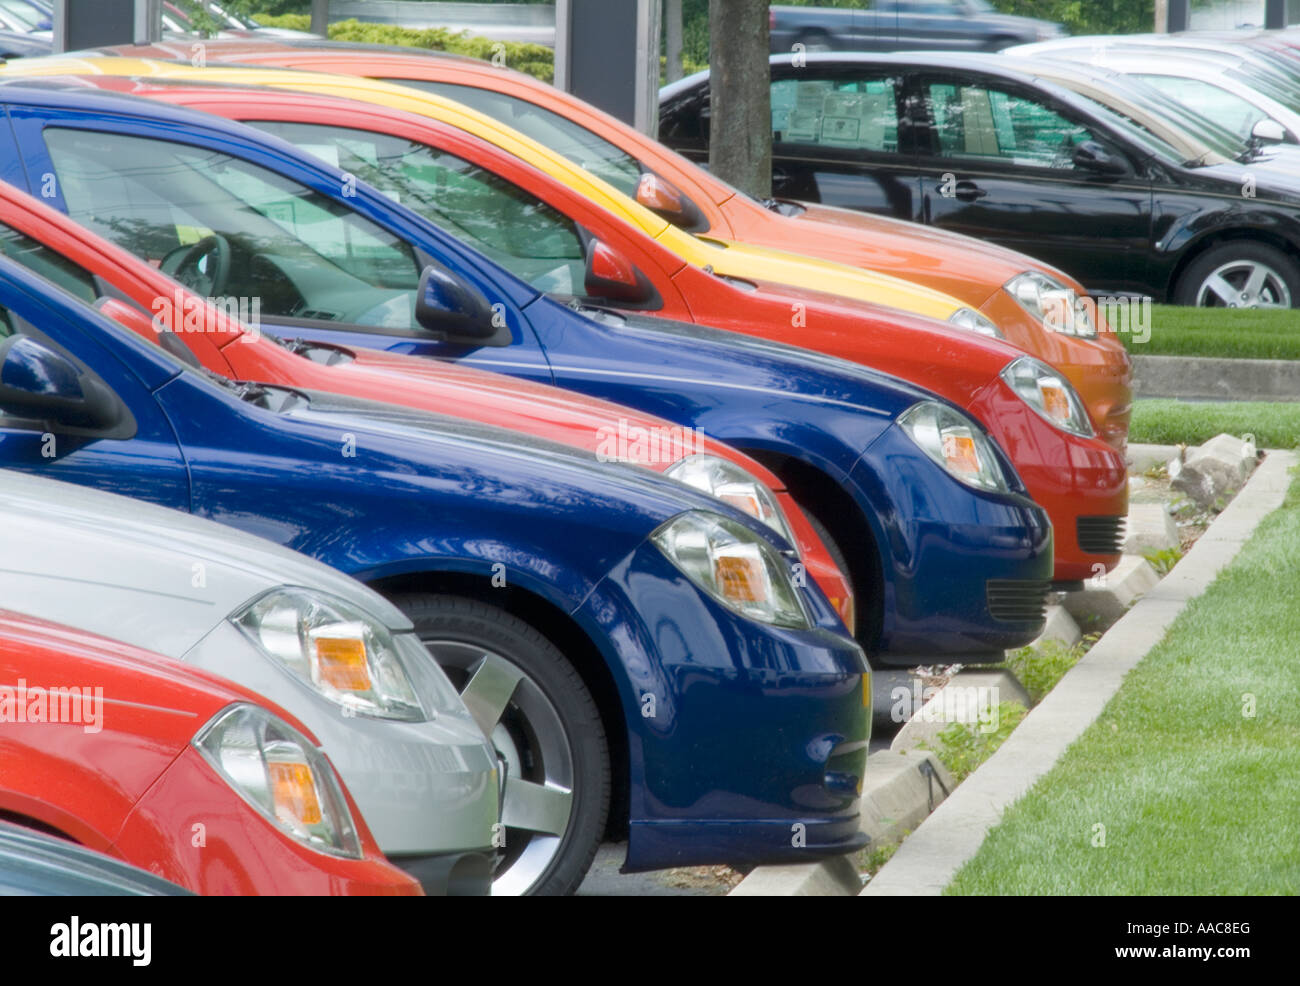 Rows Of New Cars For Sale In New Car Dealership Parking Lot Stock Photo